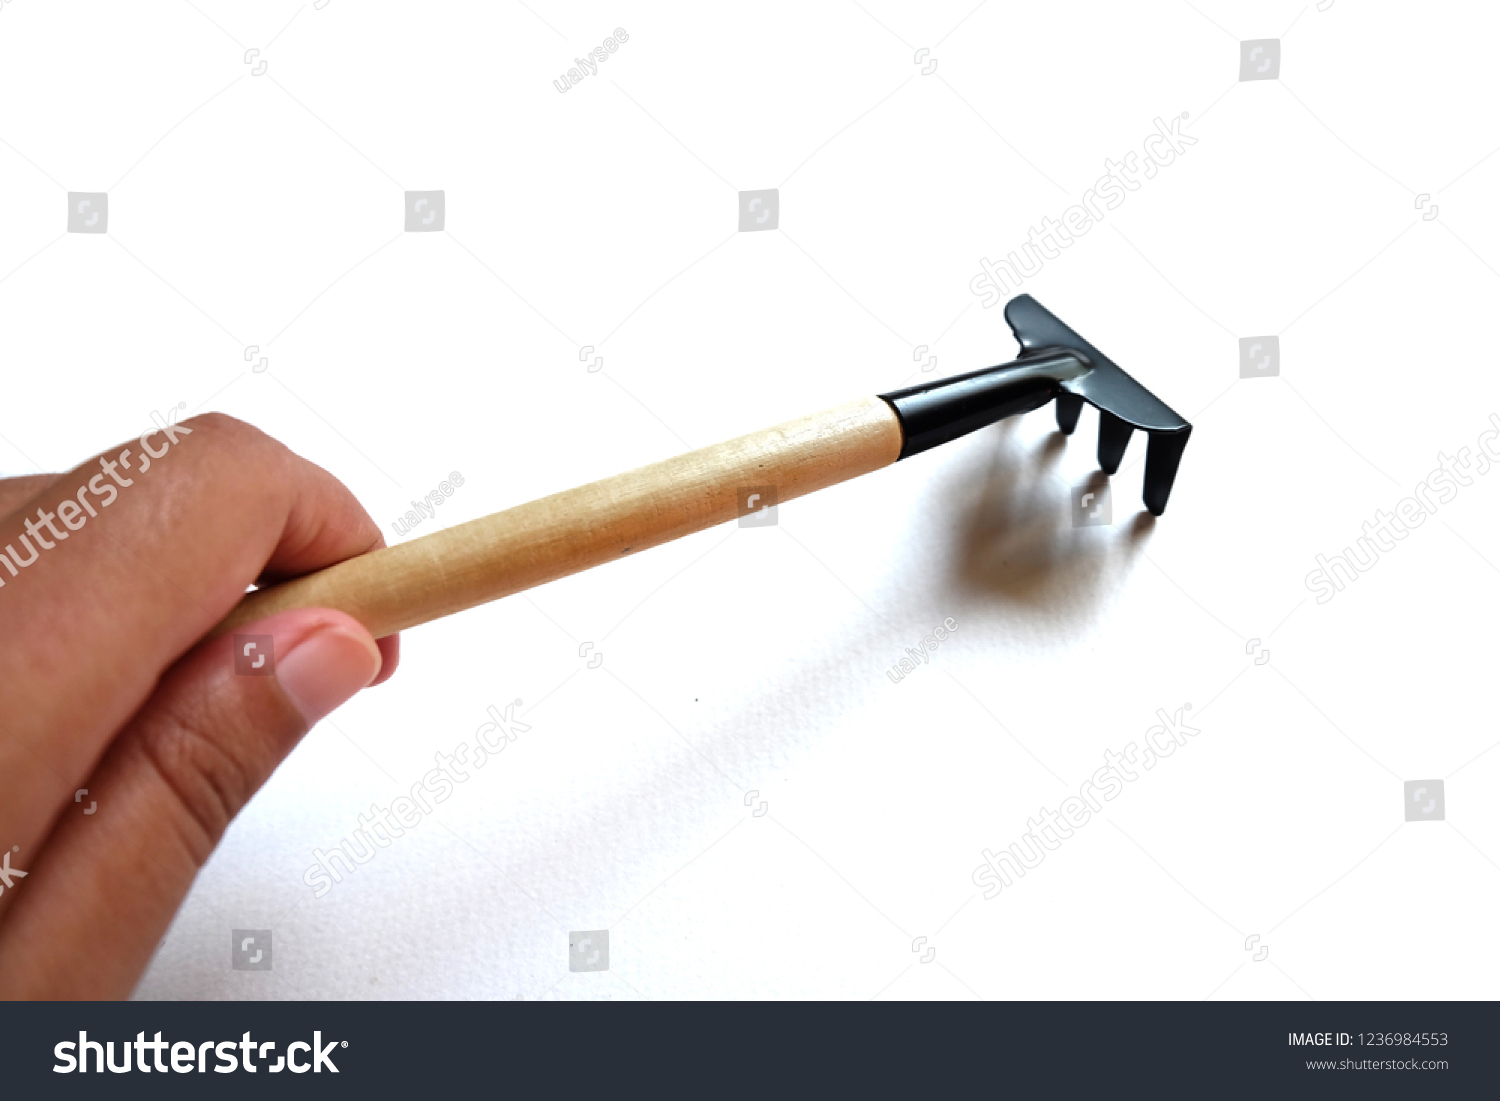 Hand Holding Rake Cultivating Landtool Horticulture Stock